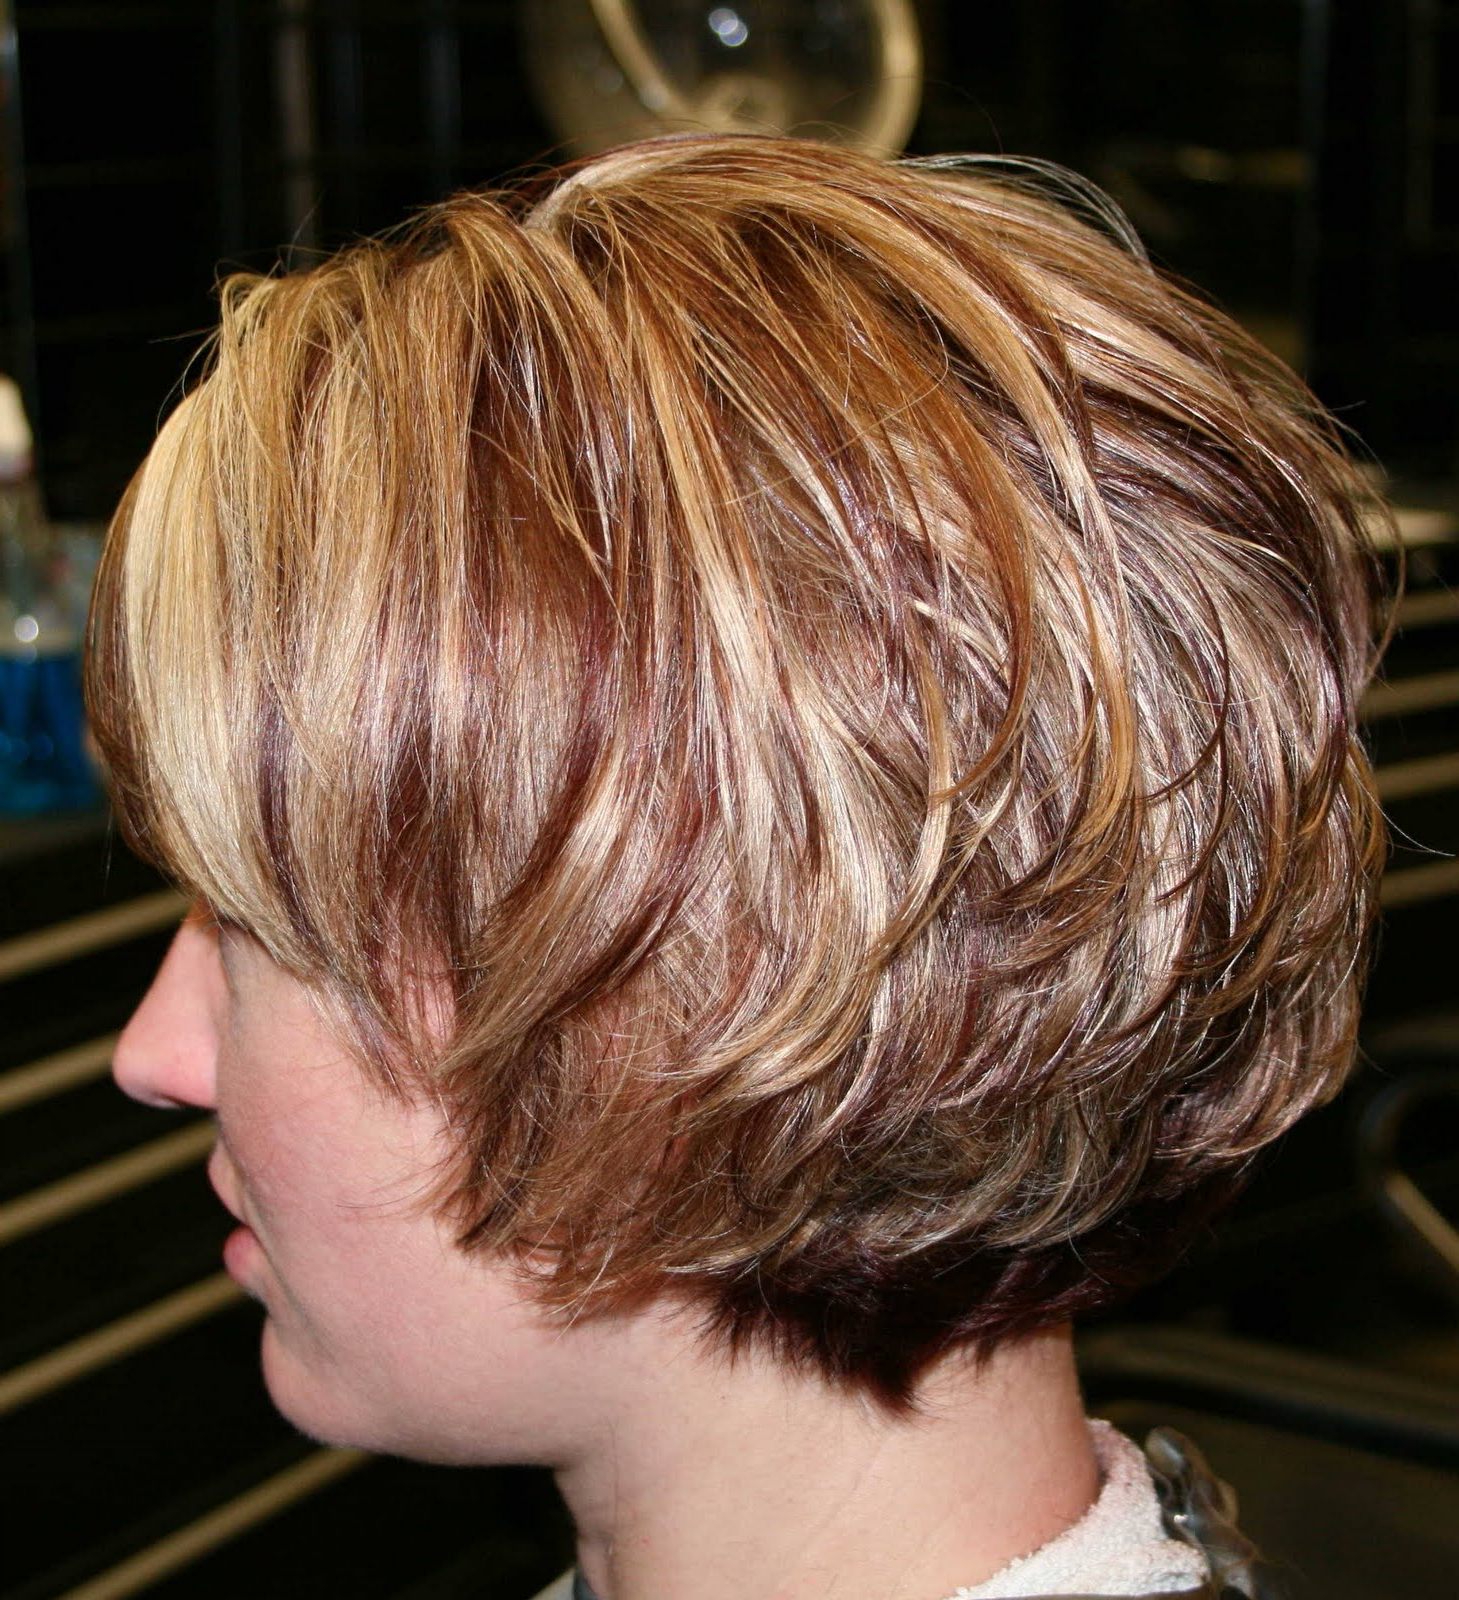 Popular Curly Layered Bob Hairstyles With Regard To Short Curly Layered Bob Hairstyles – Hairstyle For Women & Man (View 16 of 20)